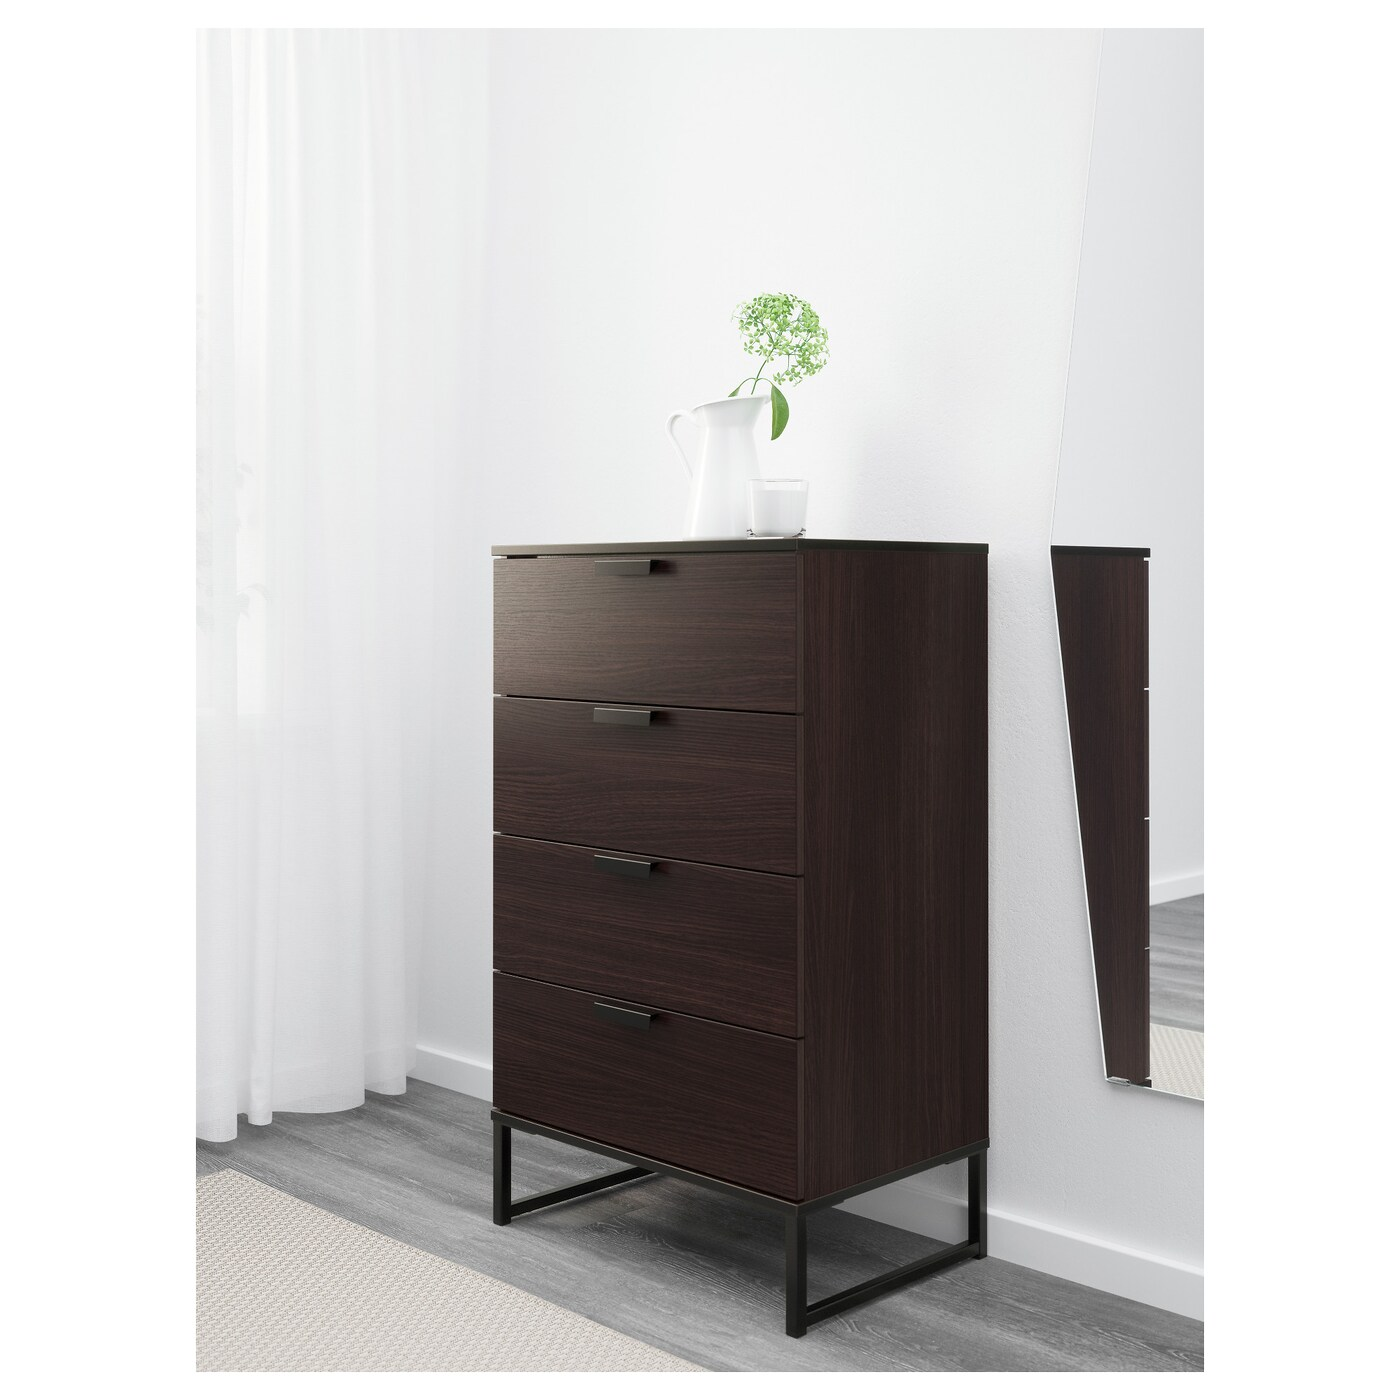 trysil commode 4 tiroirs brun fonc 60x99 cm ikea. Black Bedroom Furniture Sets. Home Design Ideas